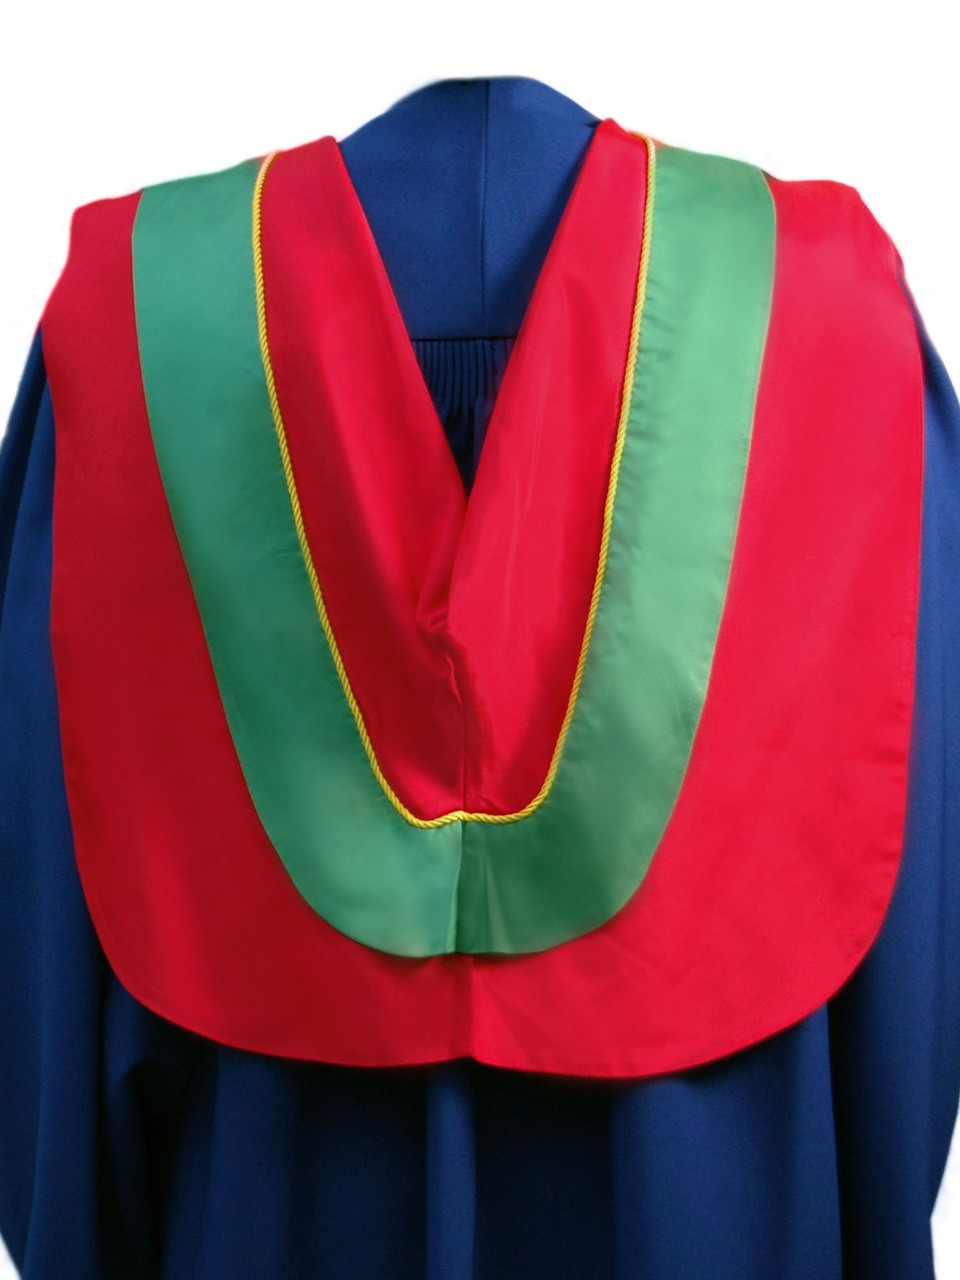 The Master of Resource Management hood is red with wide green border and gold cording